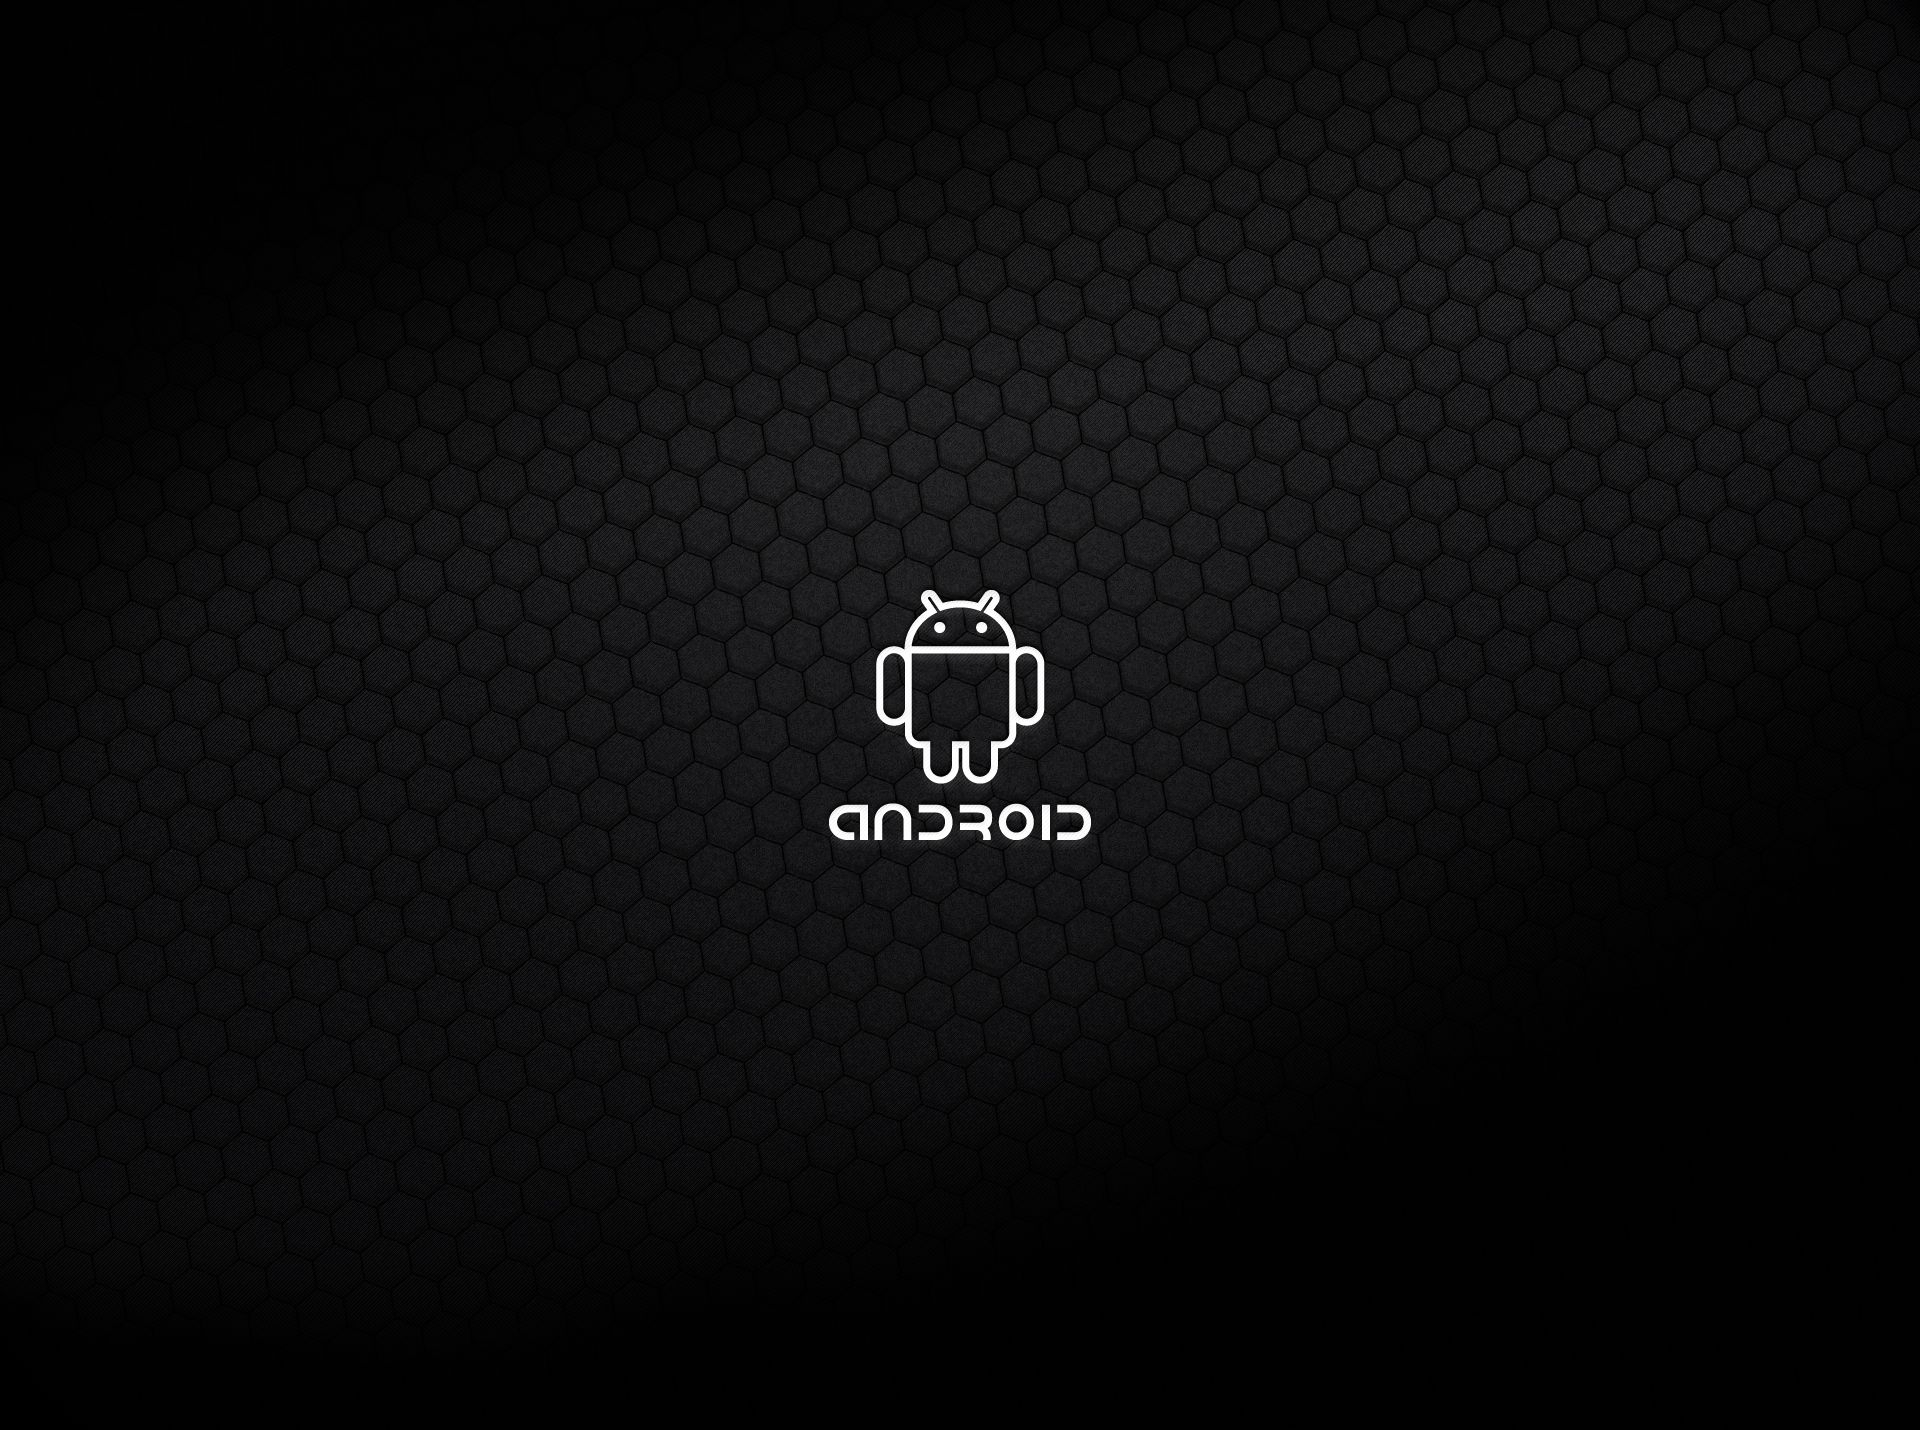 android logo wallpapers hd images download